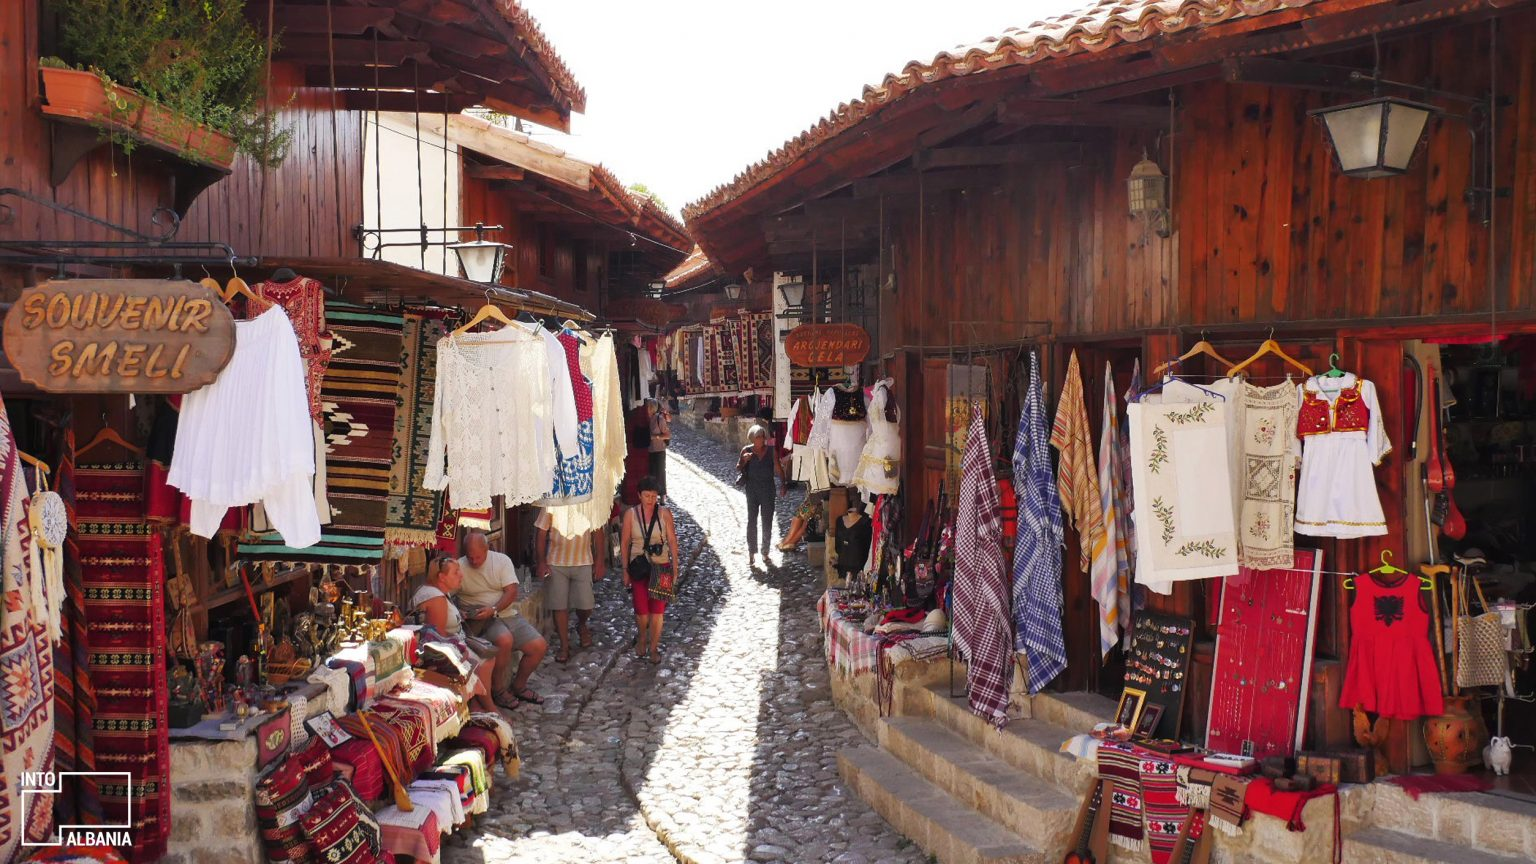 Old Bazaar of Kruja, photo by IntoAlbania